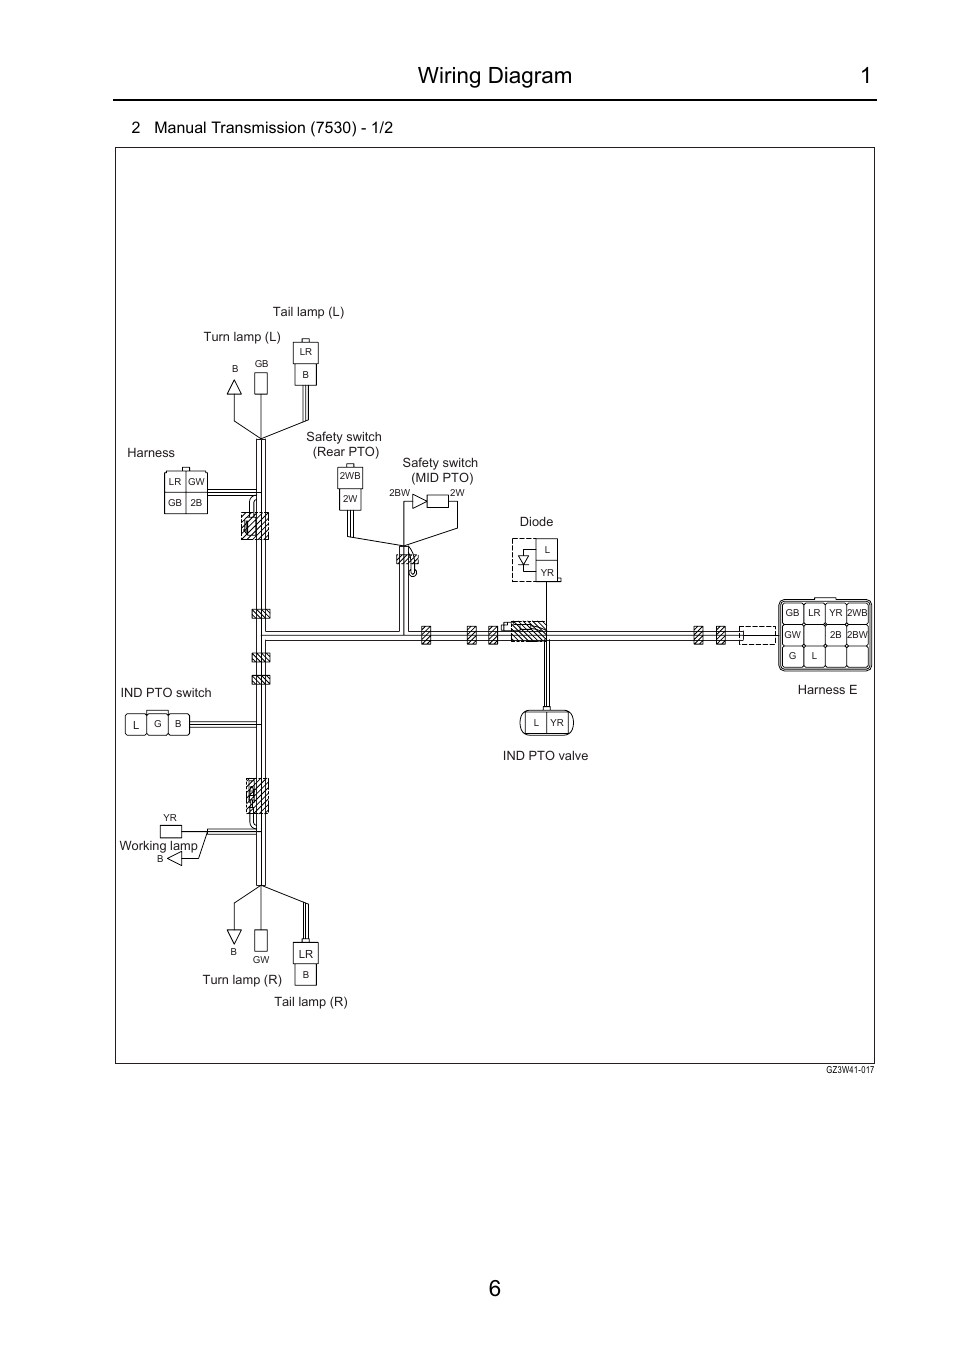 Wiring Diagram 1 6